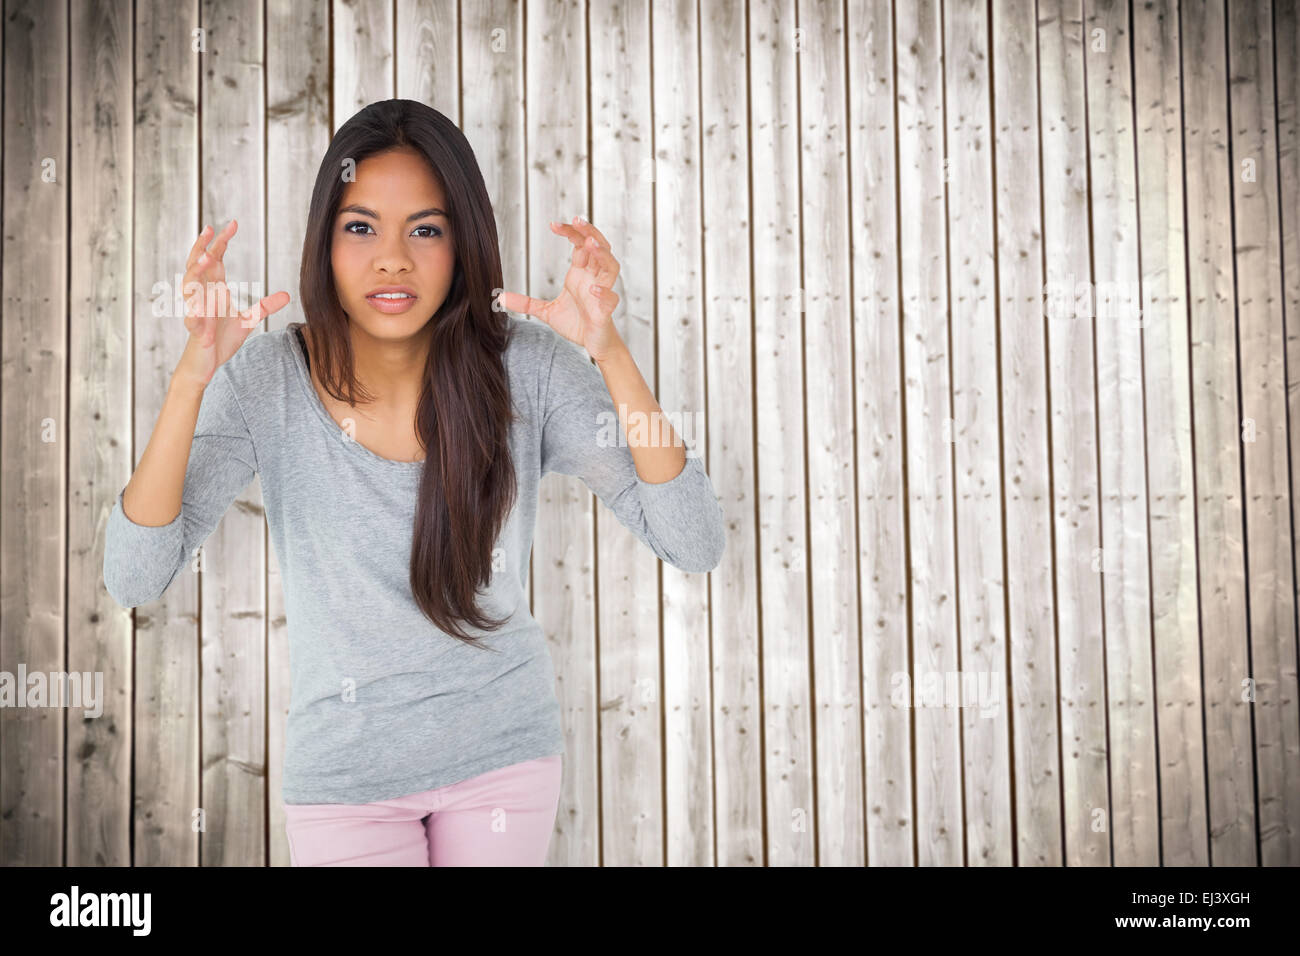 Composite image of angry brunette gesturing - Stock Image